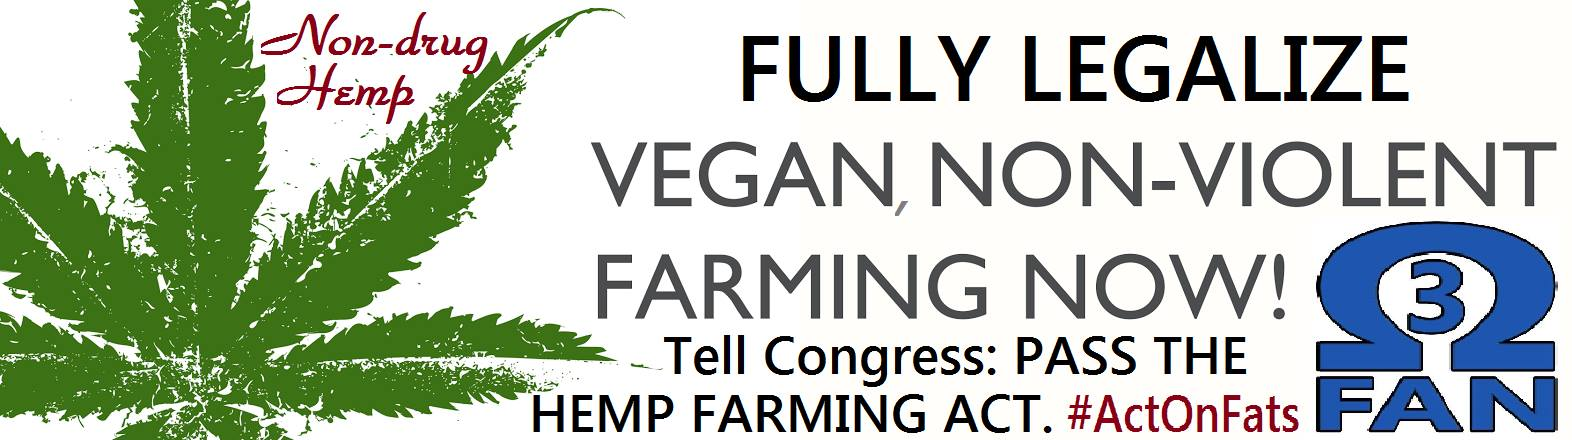 Vegan Farming Rights NOW